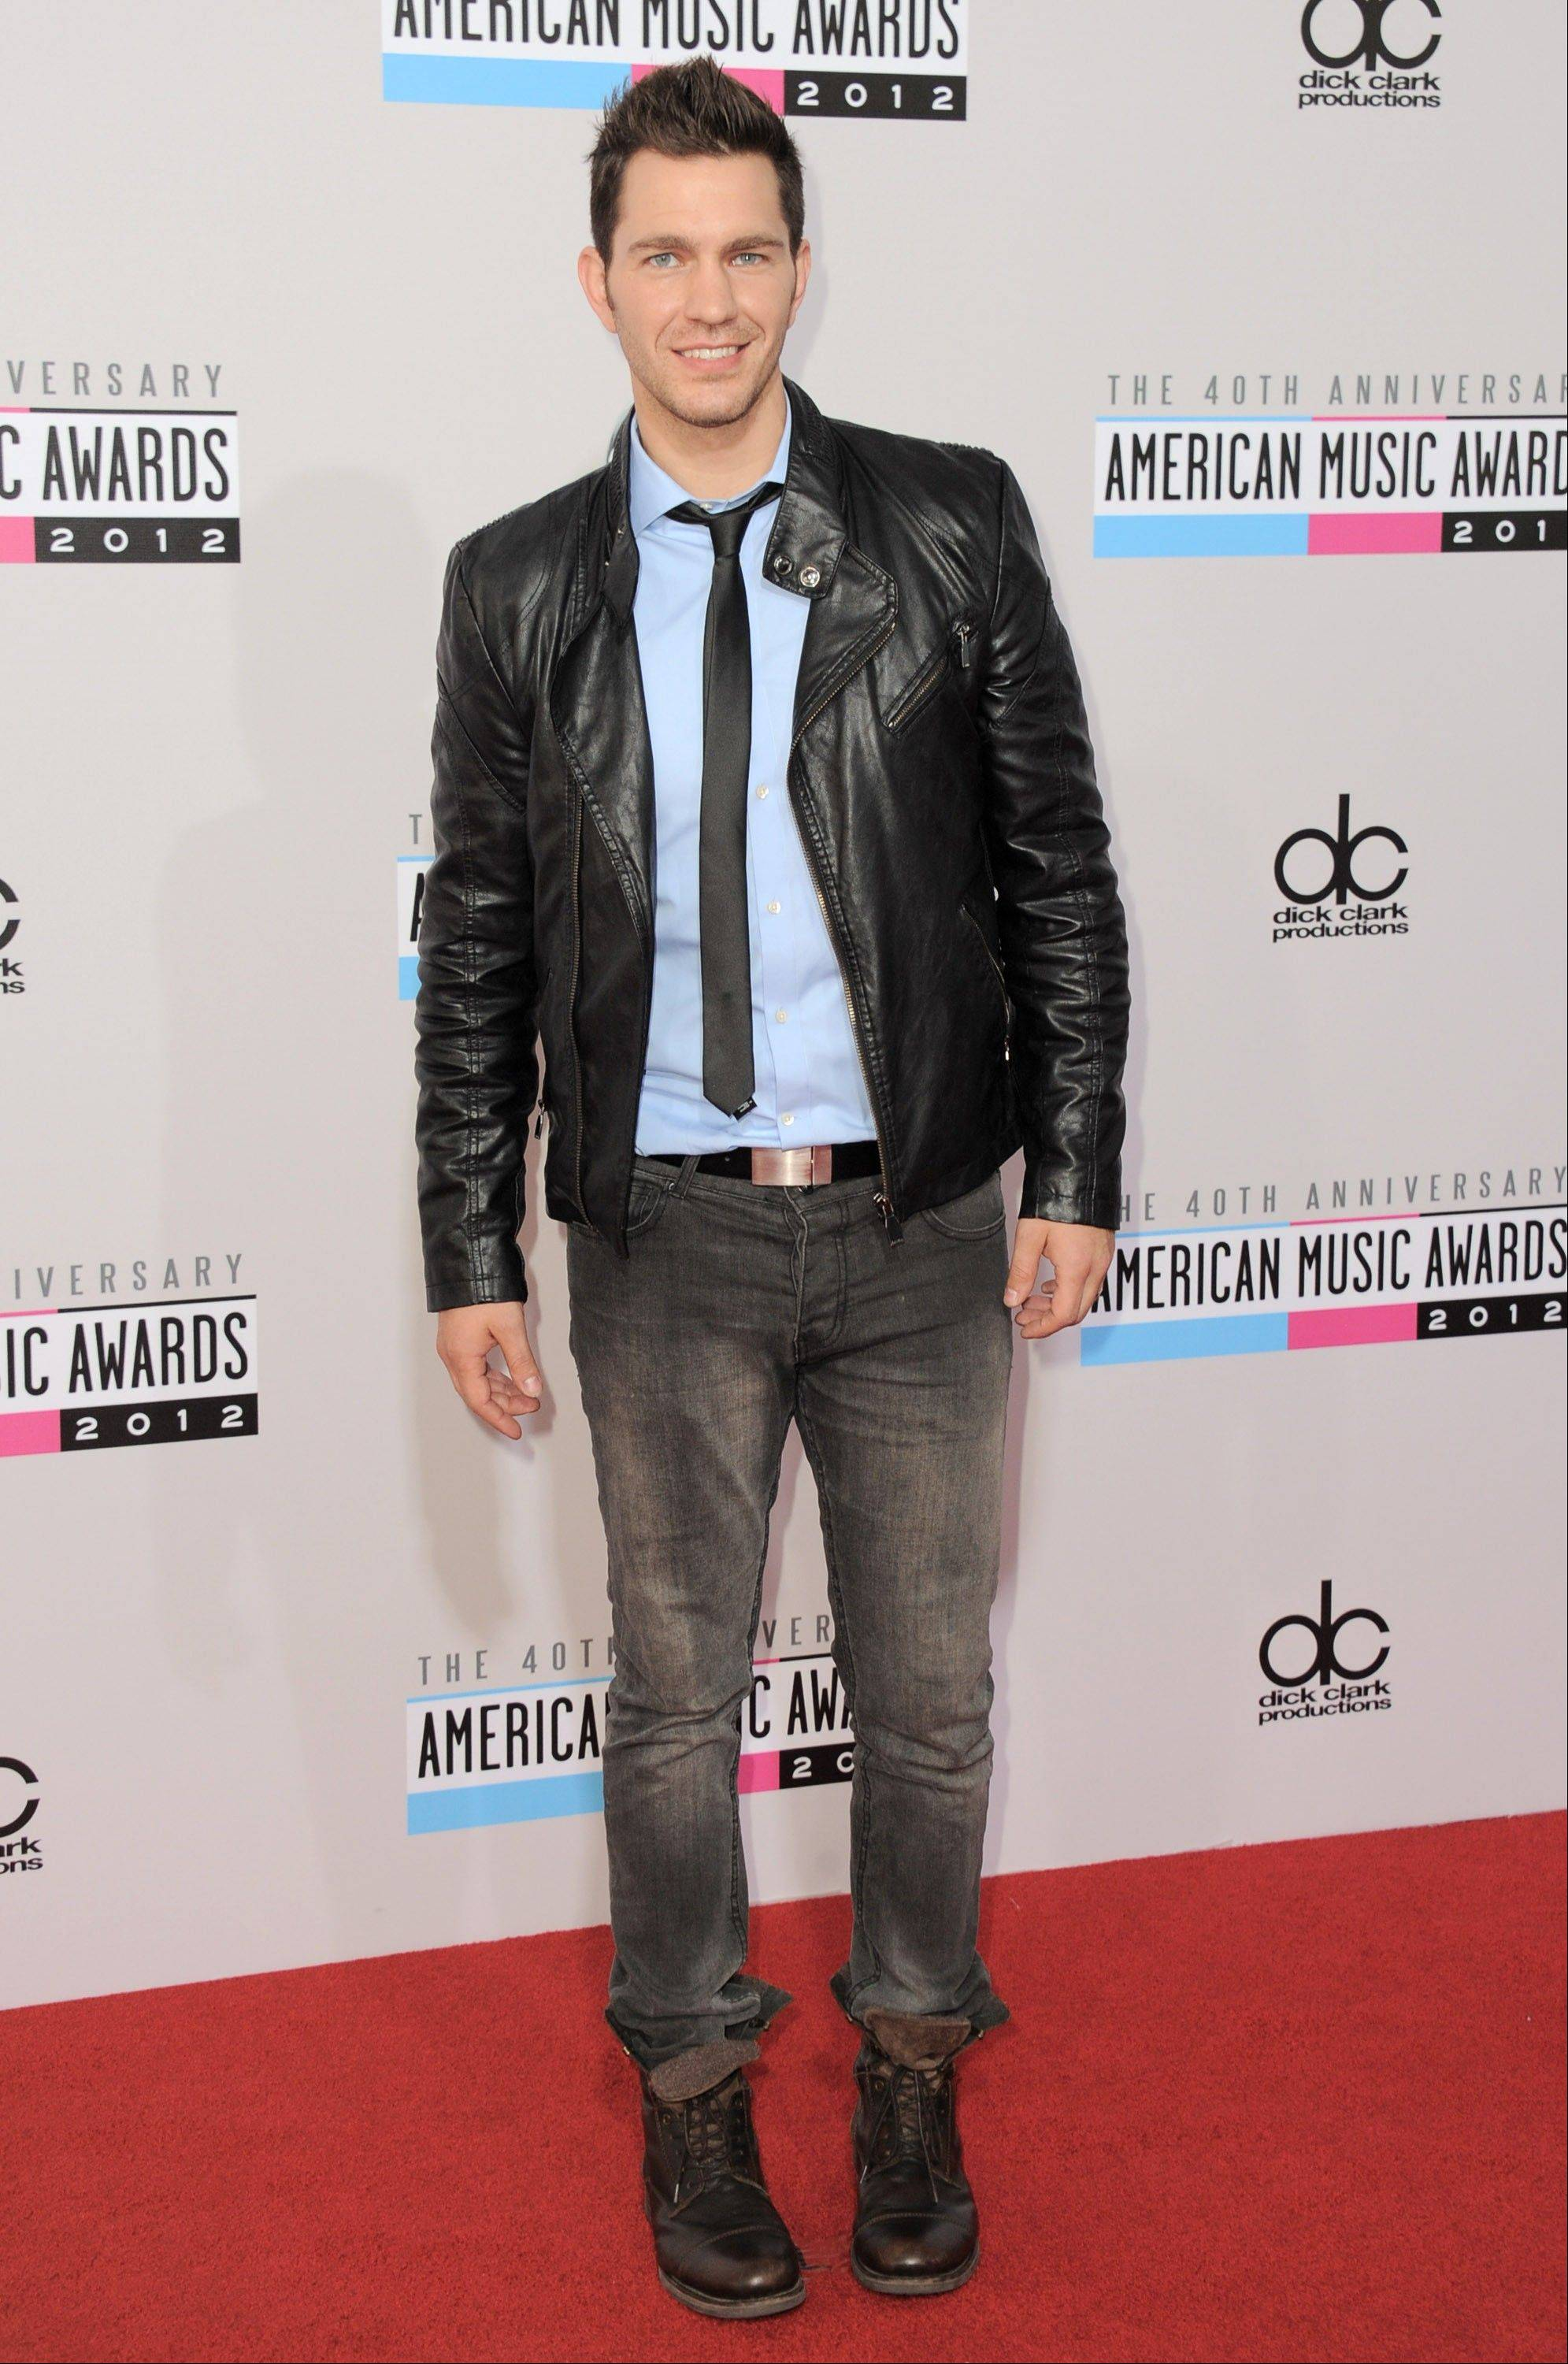 Singer Andy Grammer arrives at the 40th Anniversary American Music Awards.